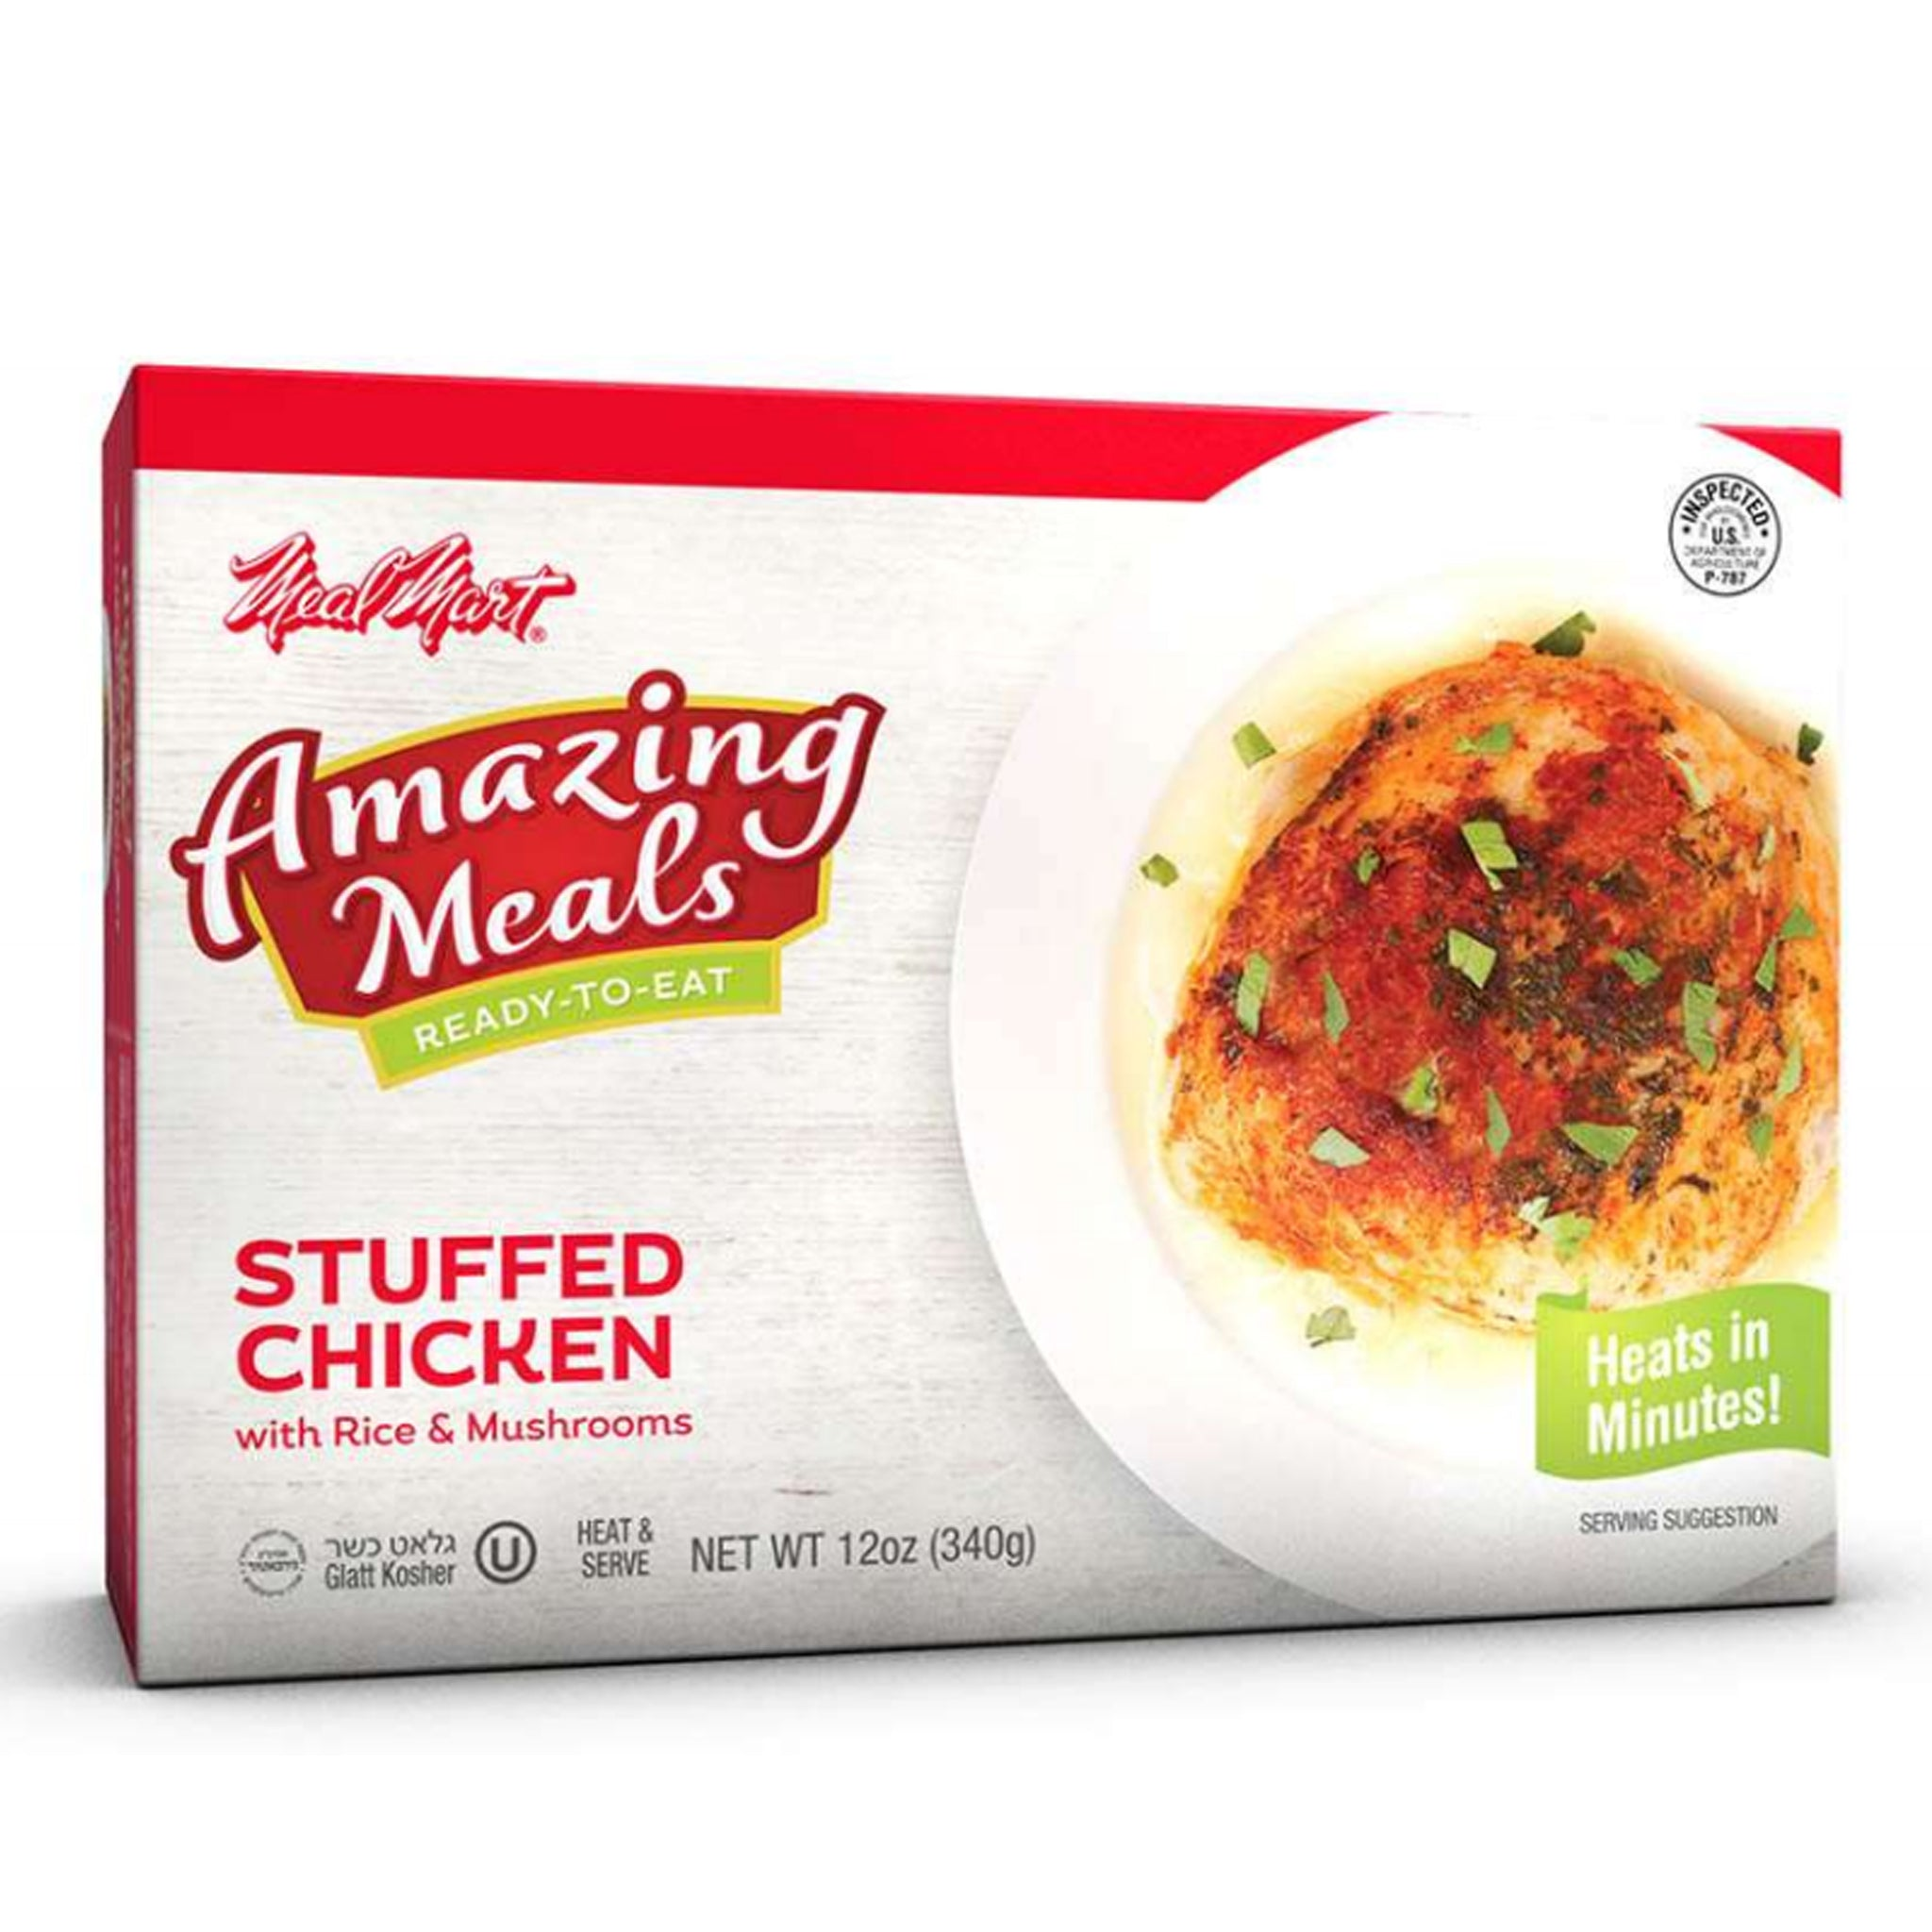 Meal Mart Amazing Meals Stuffed Chicken, 12 Ounce Each (Pack of 12)